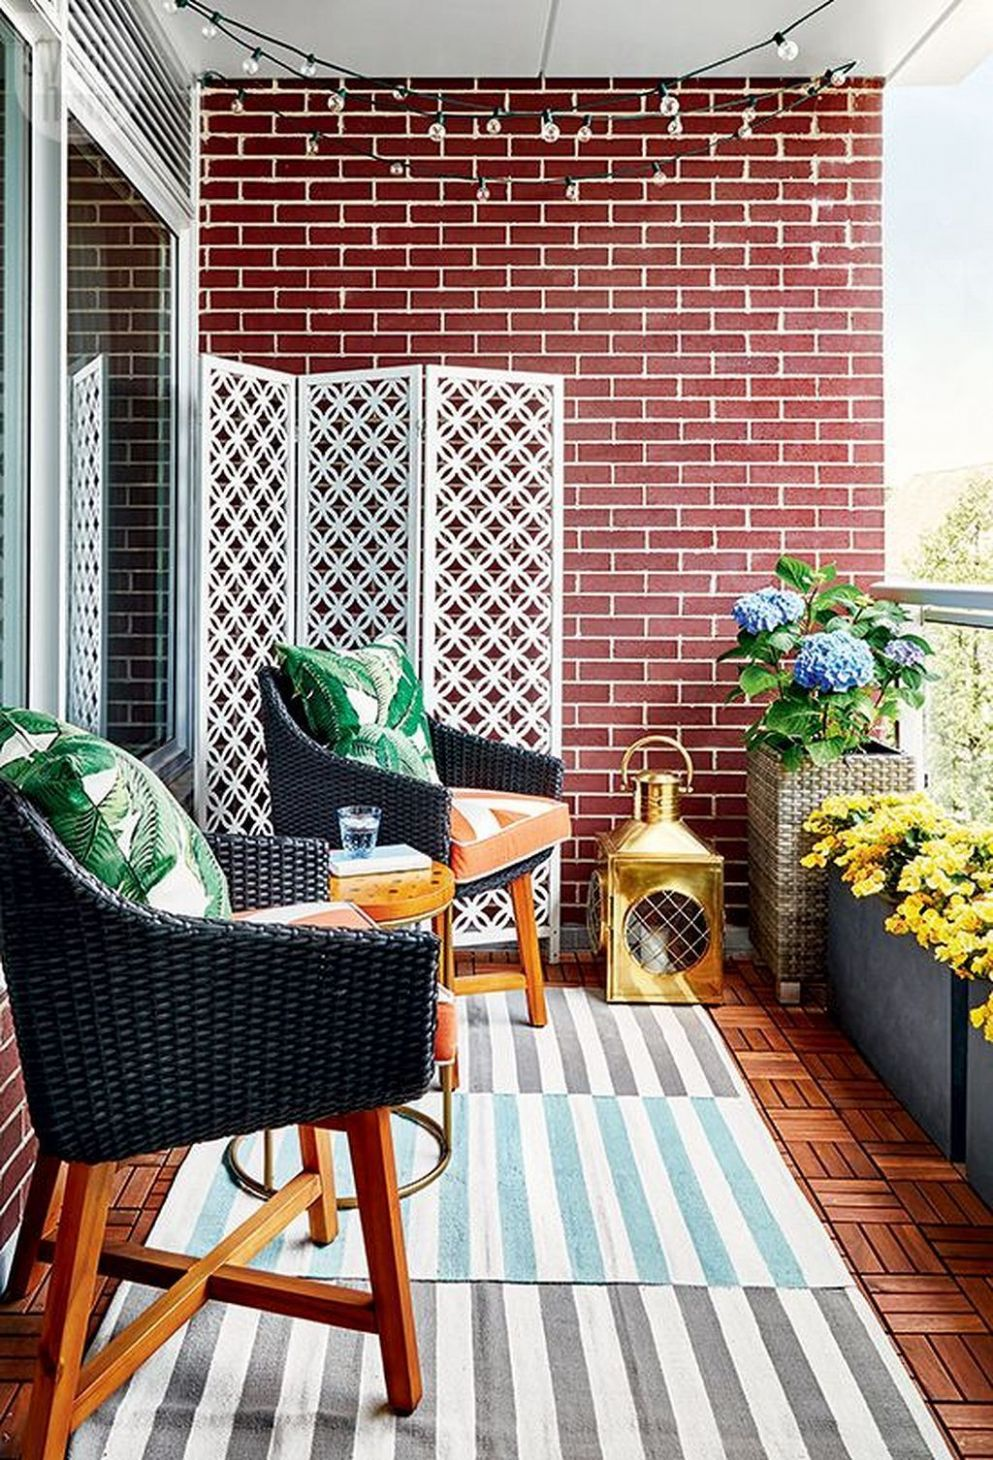 11+ Small Apartment Balcony Decor Ideas on A Budget (With images ...